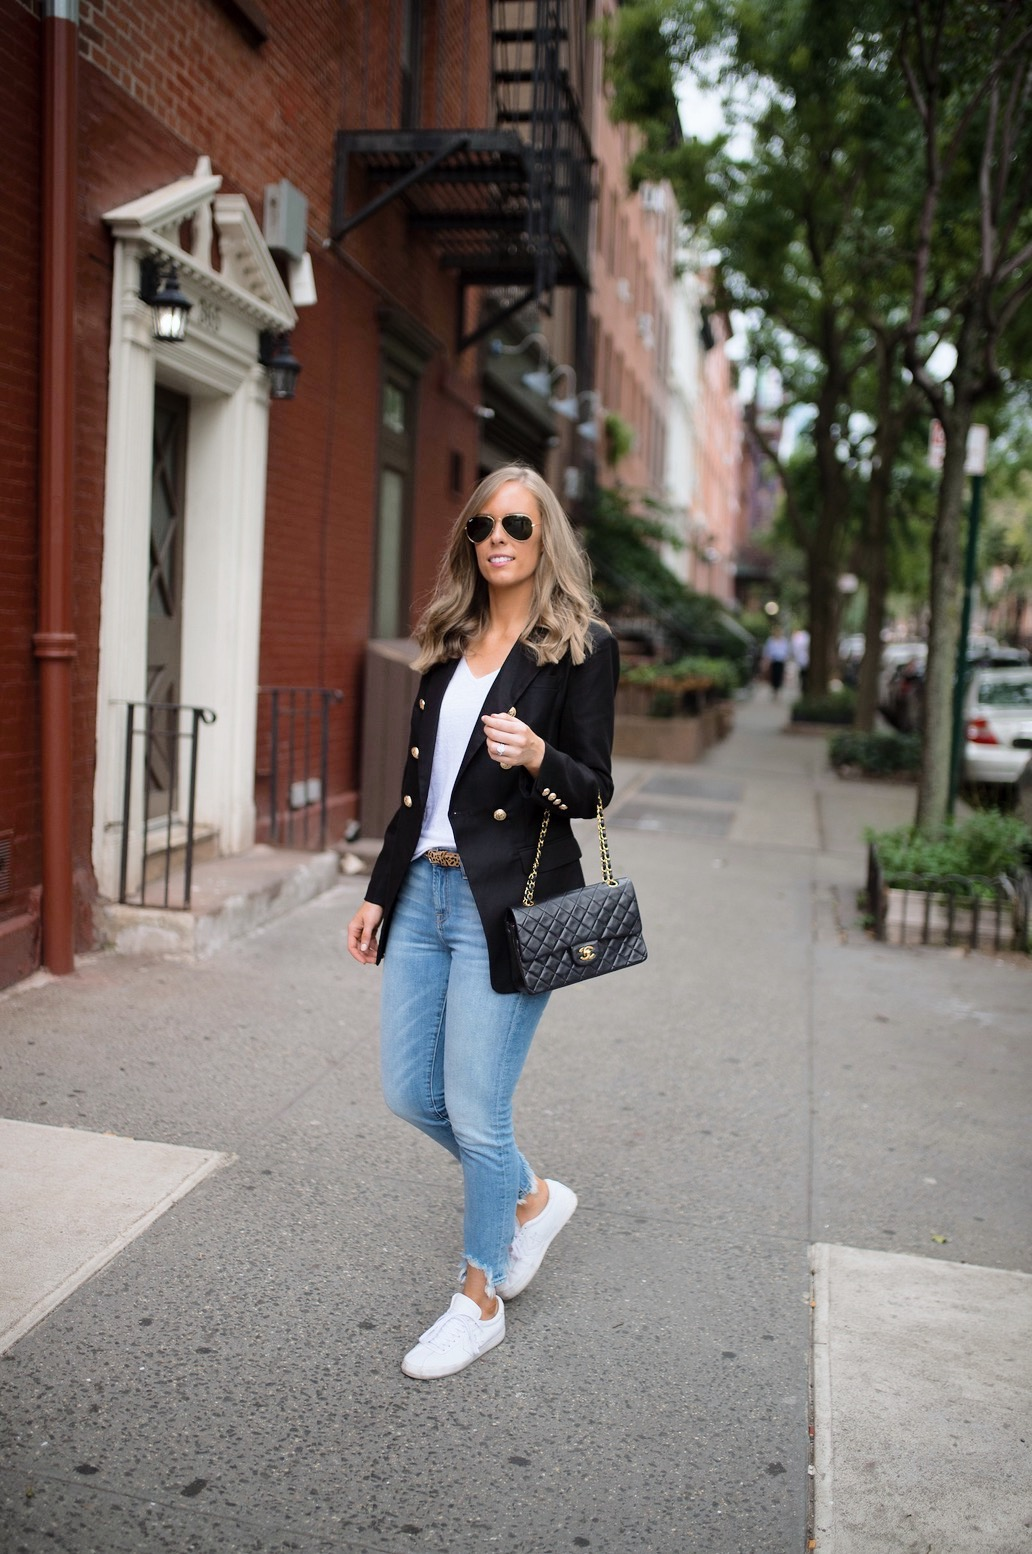 casual-outfit-ideas-blue-distressed-jeans-white-sneakers-balmain-blazer-chanel-bag-fashion-blogger-new-york-street-style-outfit-lauren-slade-style-elixir-blog-1